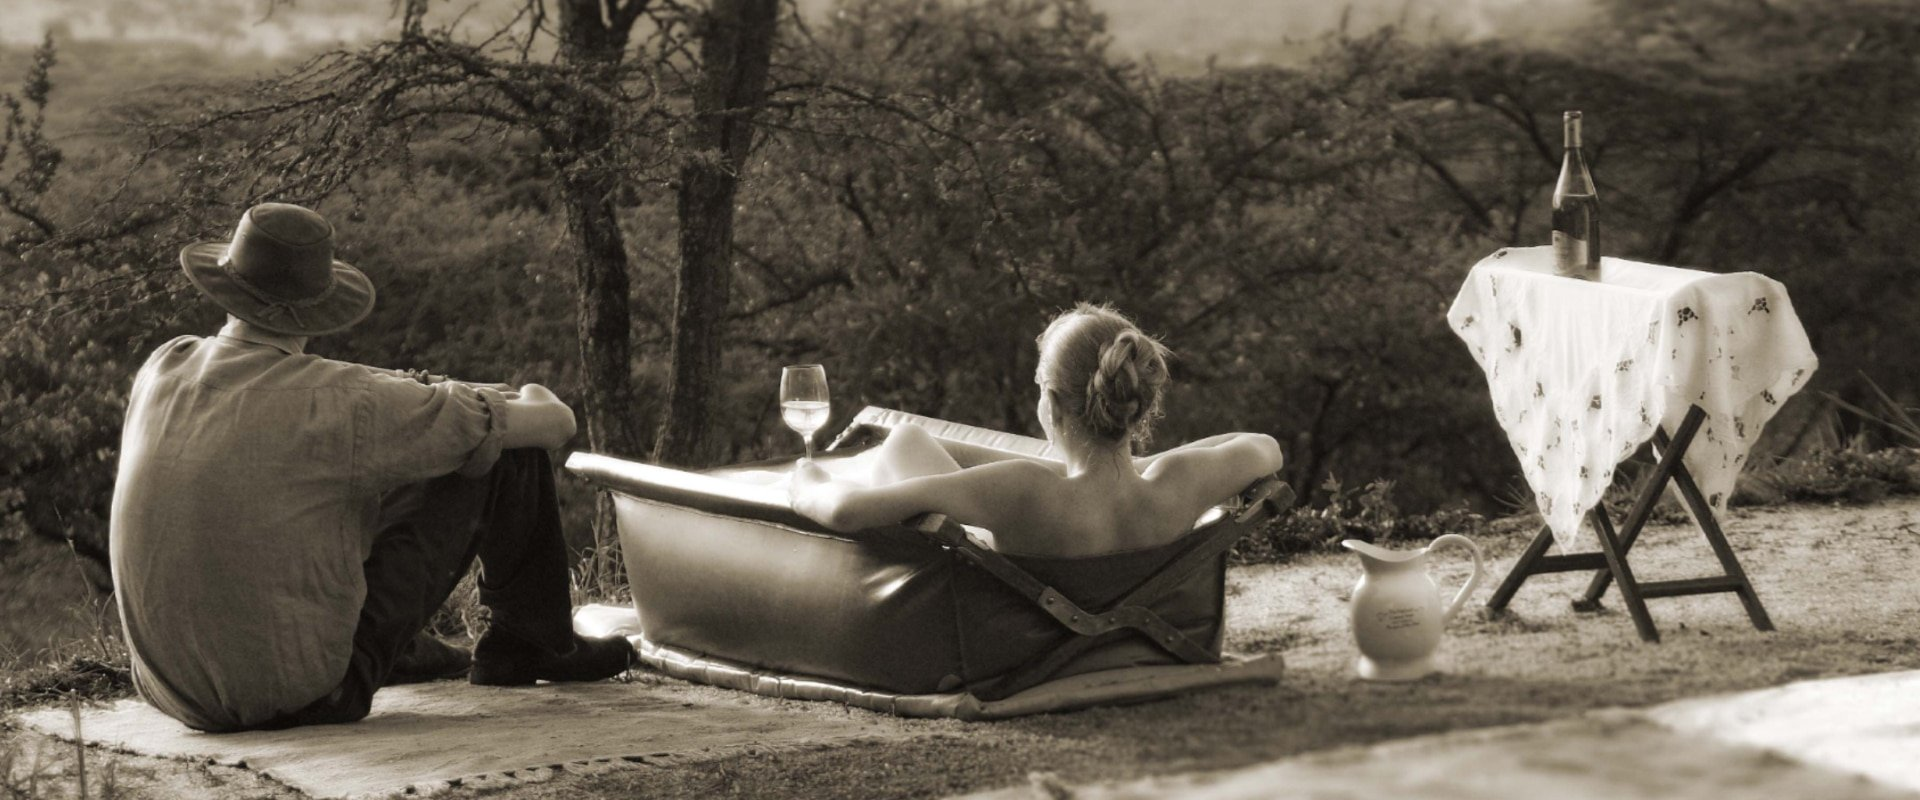 Relax in a canvas bush bath surrounded by nature